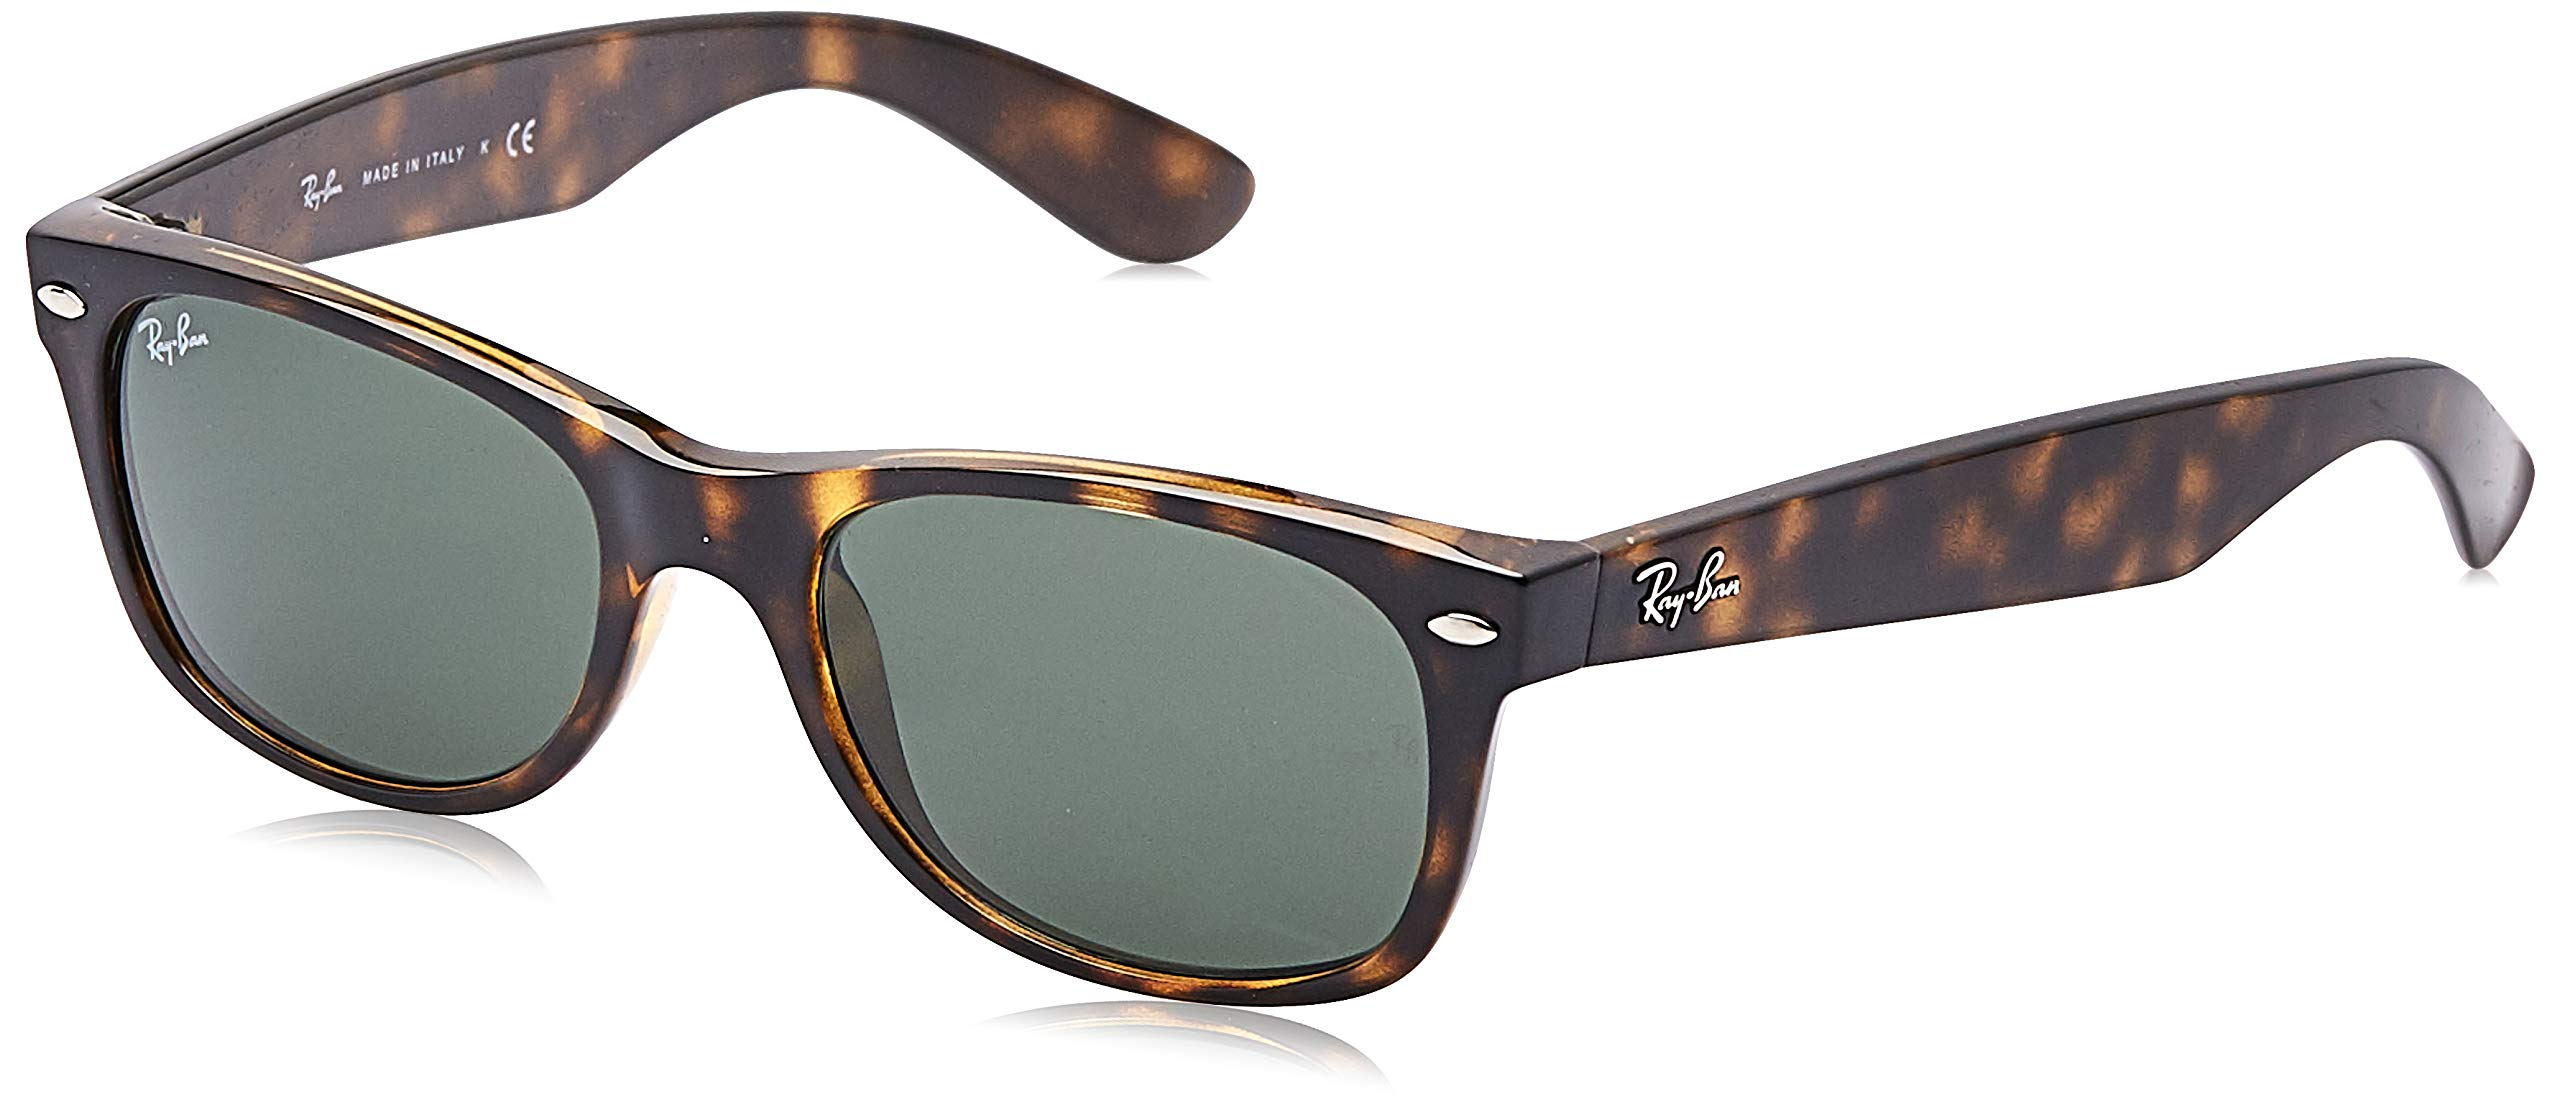 RAY-BAN RB2132 New Wayfarer Sunglasses, Tortoise/Green, 52 mm by Ray-Ban